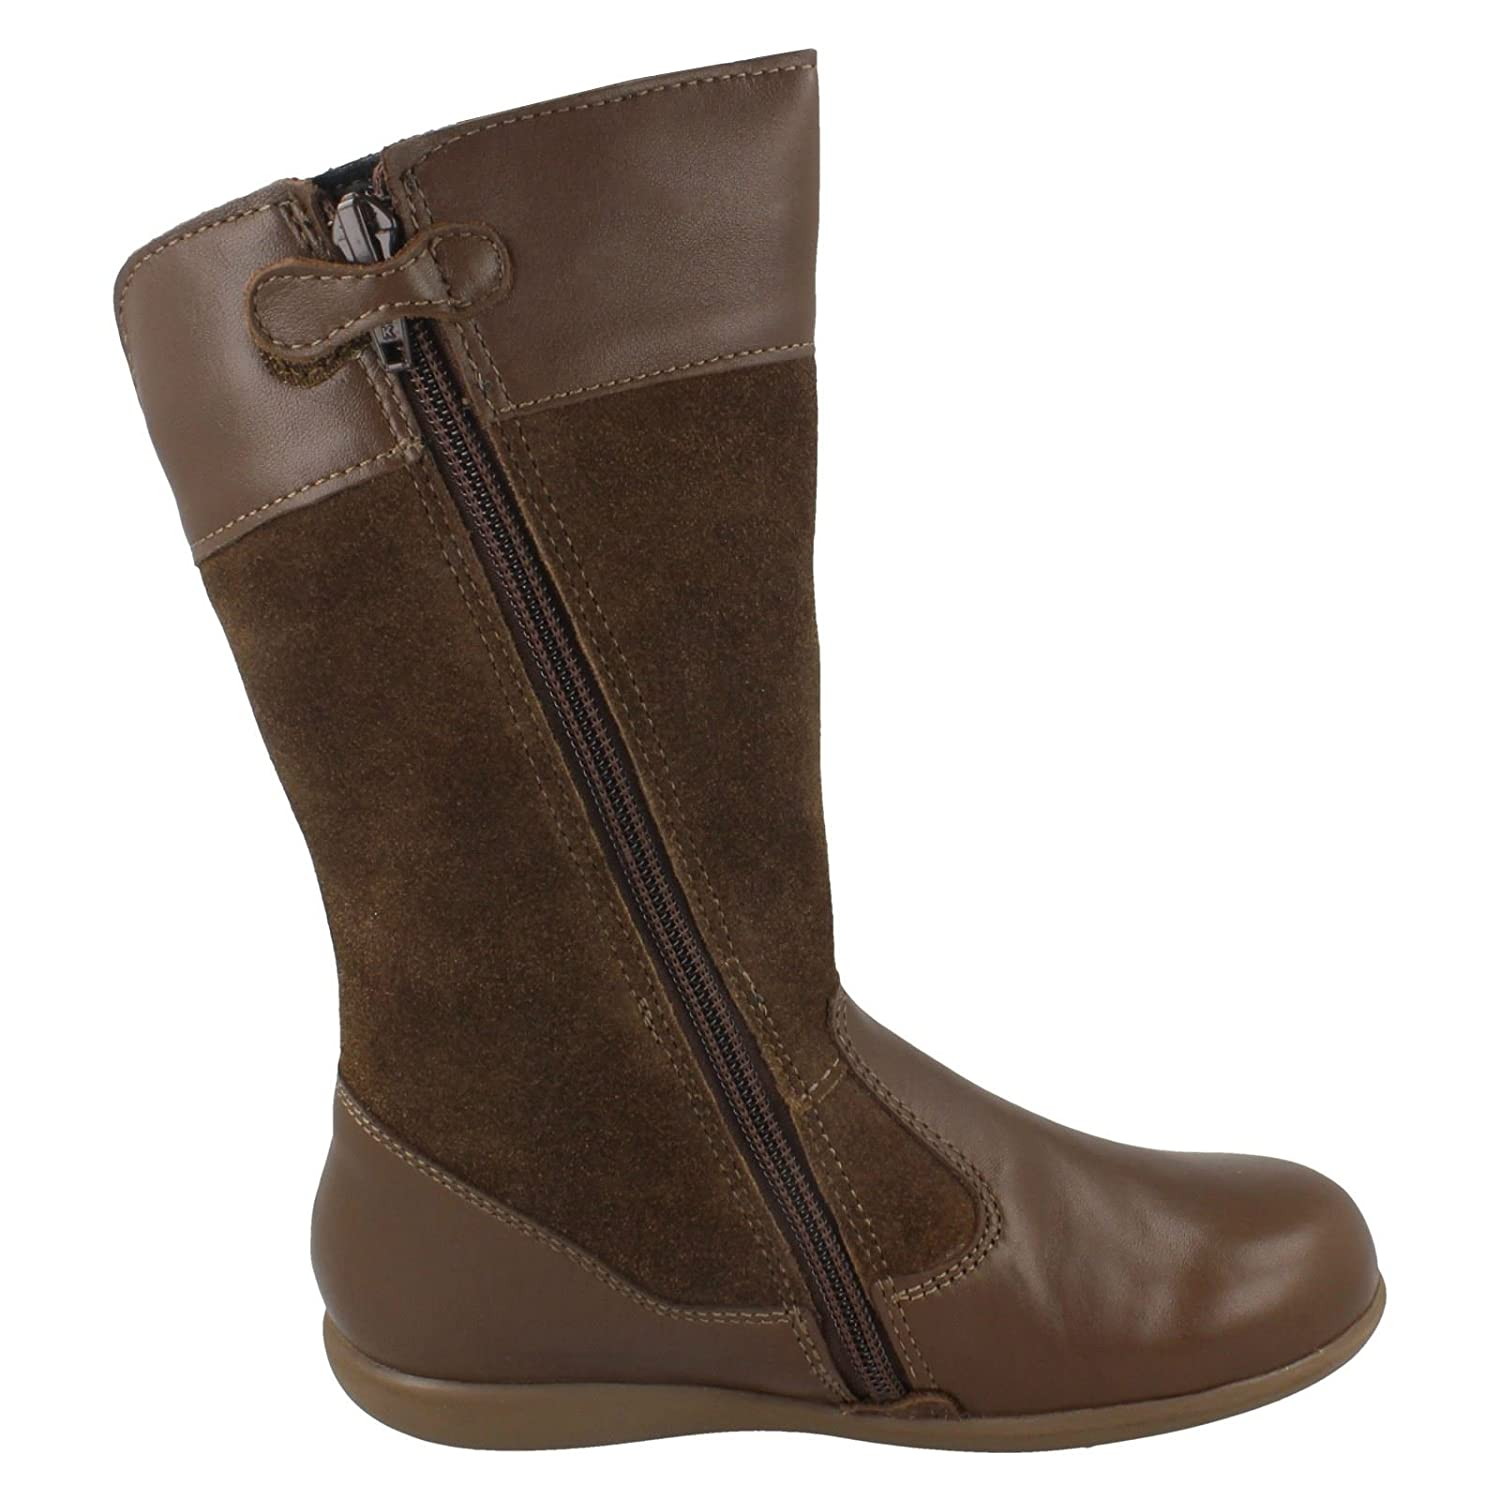 Startrite Girls Aqua Rite by Mid Calf Decorative Boots Aqua Flutter Brown  Size 10.5F: Amazon.co.uk: Shoes & Bags